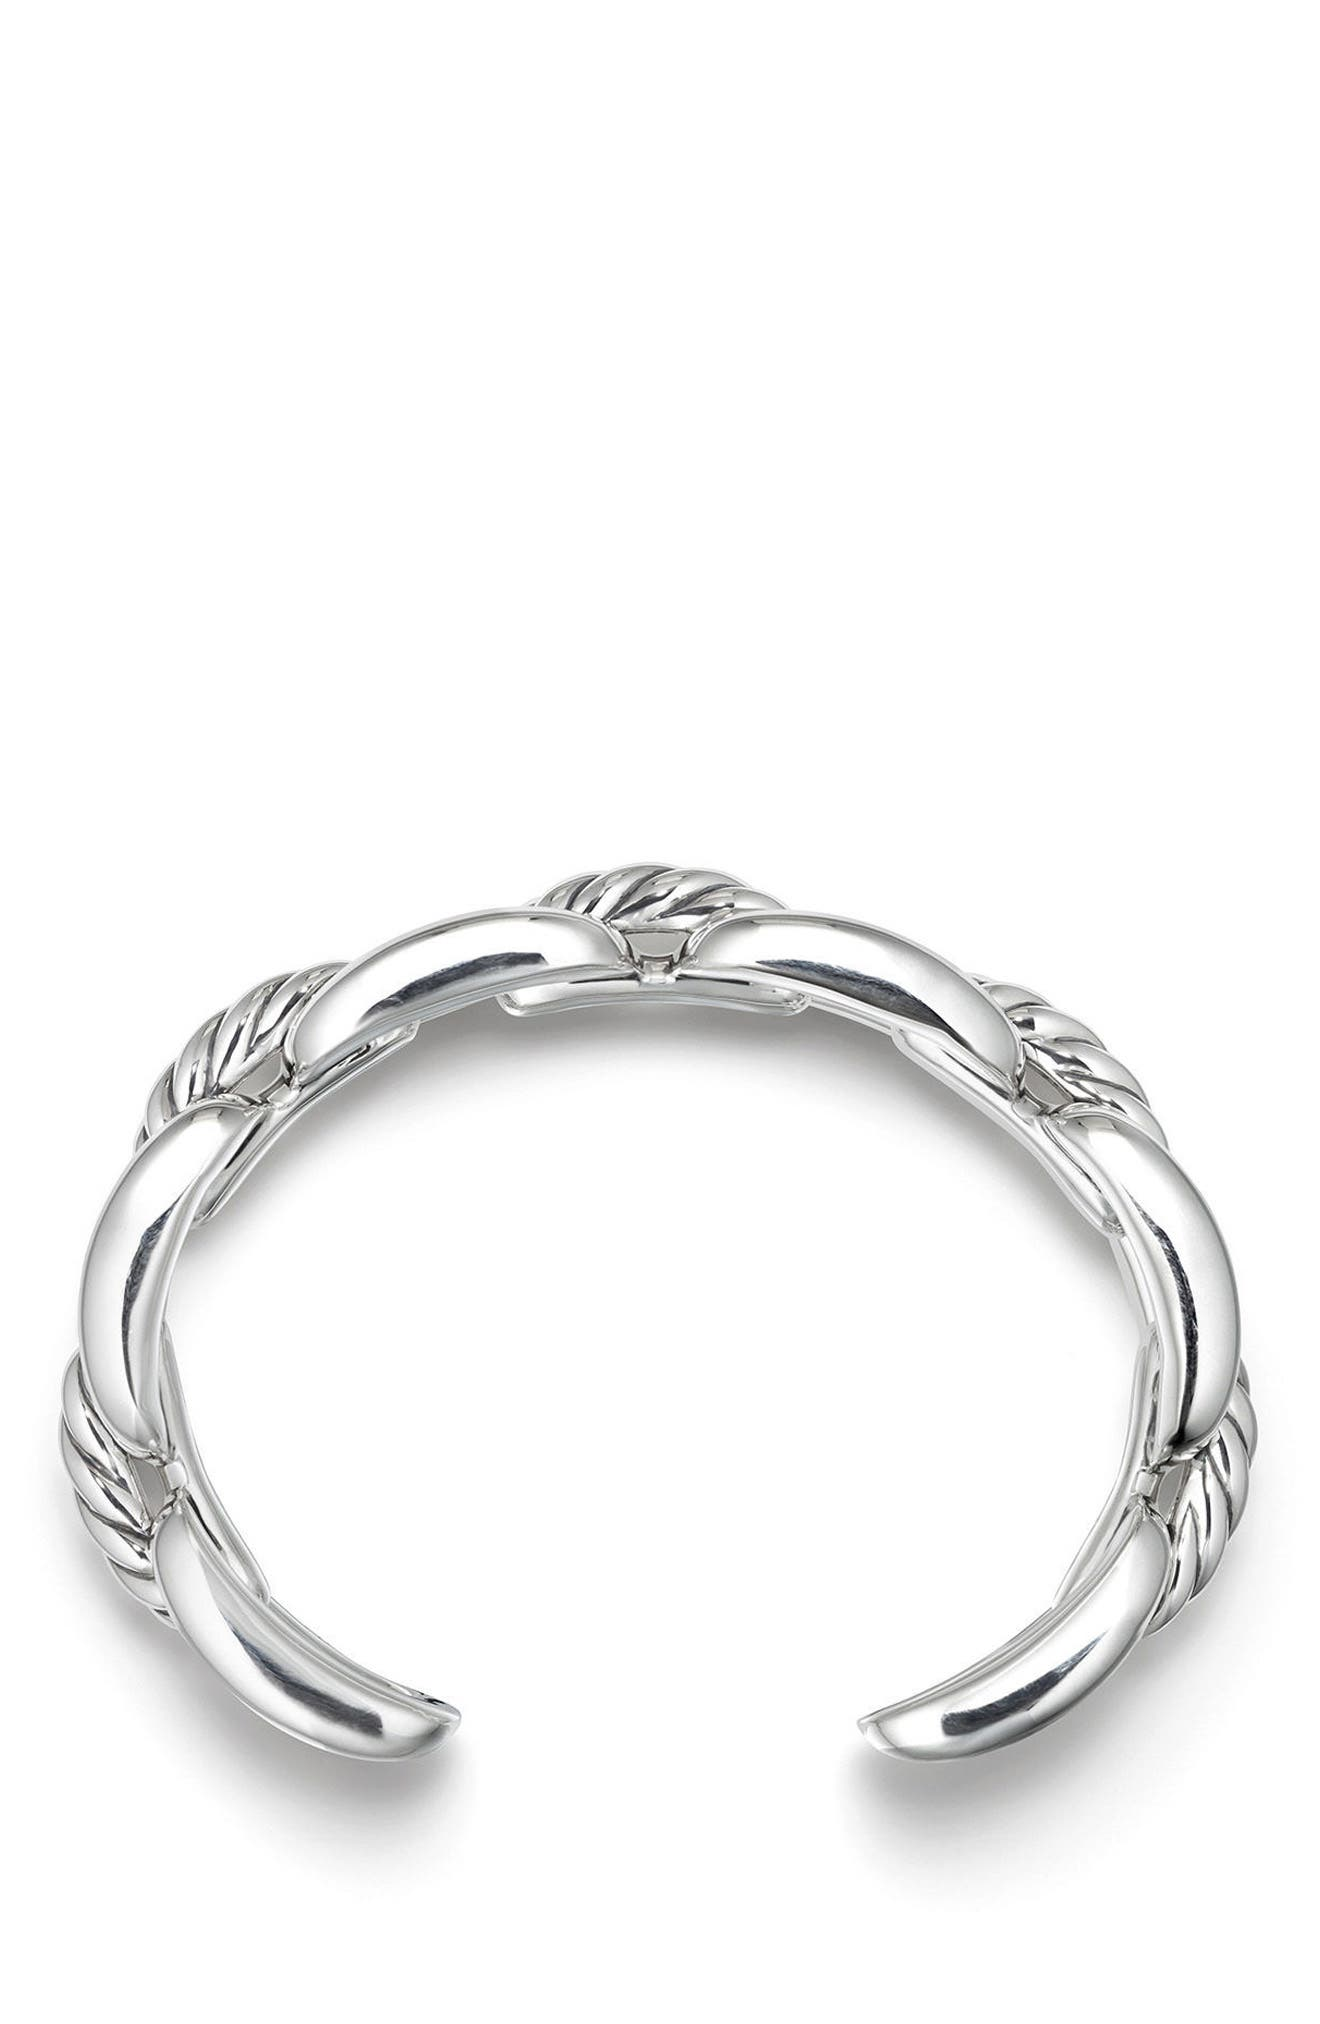 Main Image - David Yurman Wellesley Chain Link Cuff Bracelet